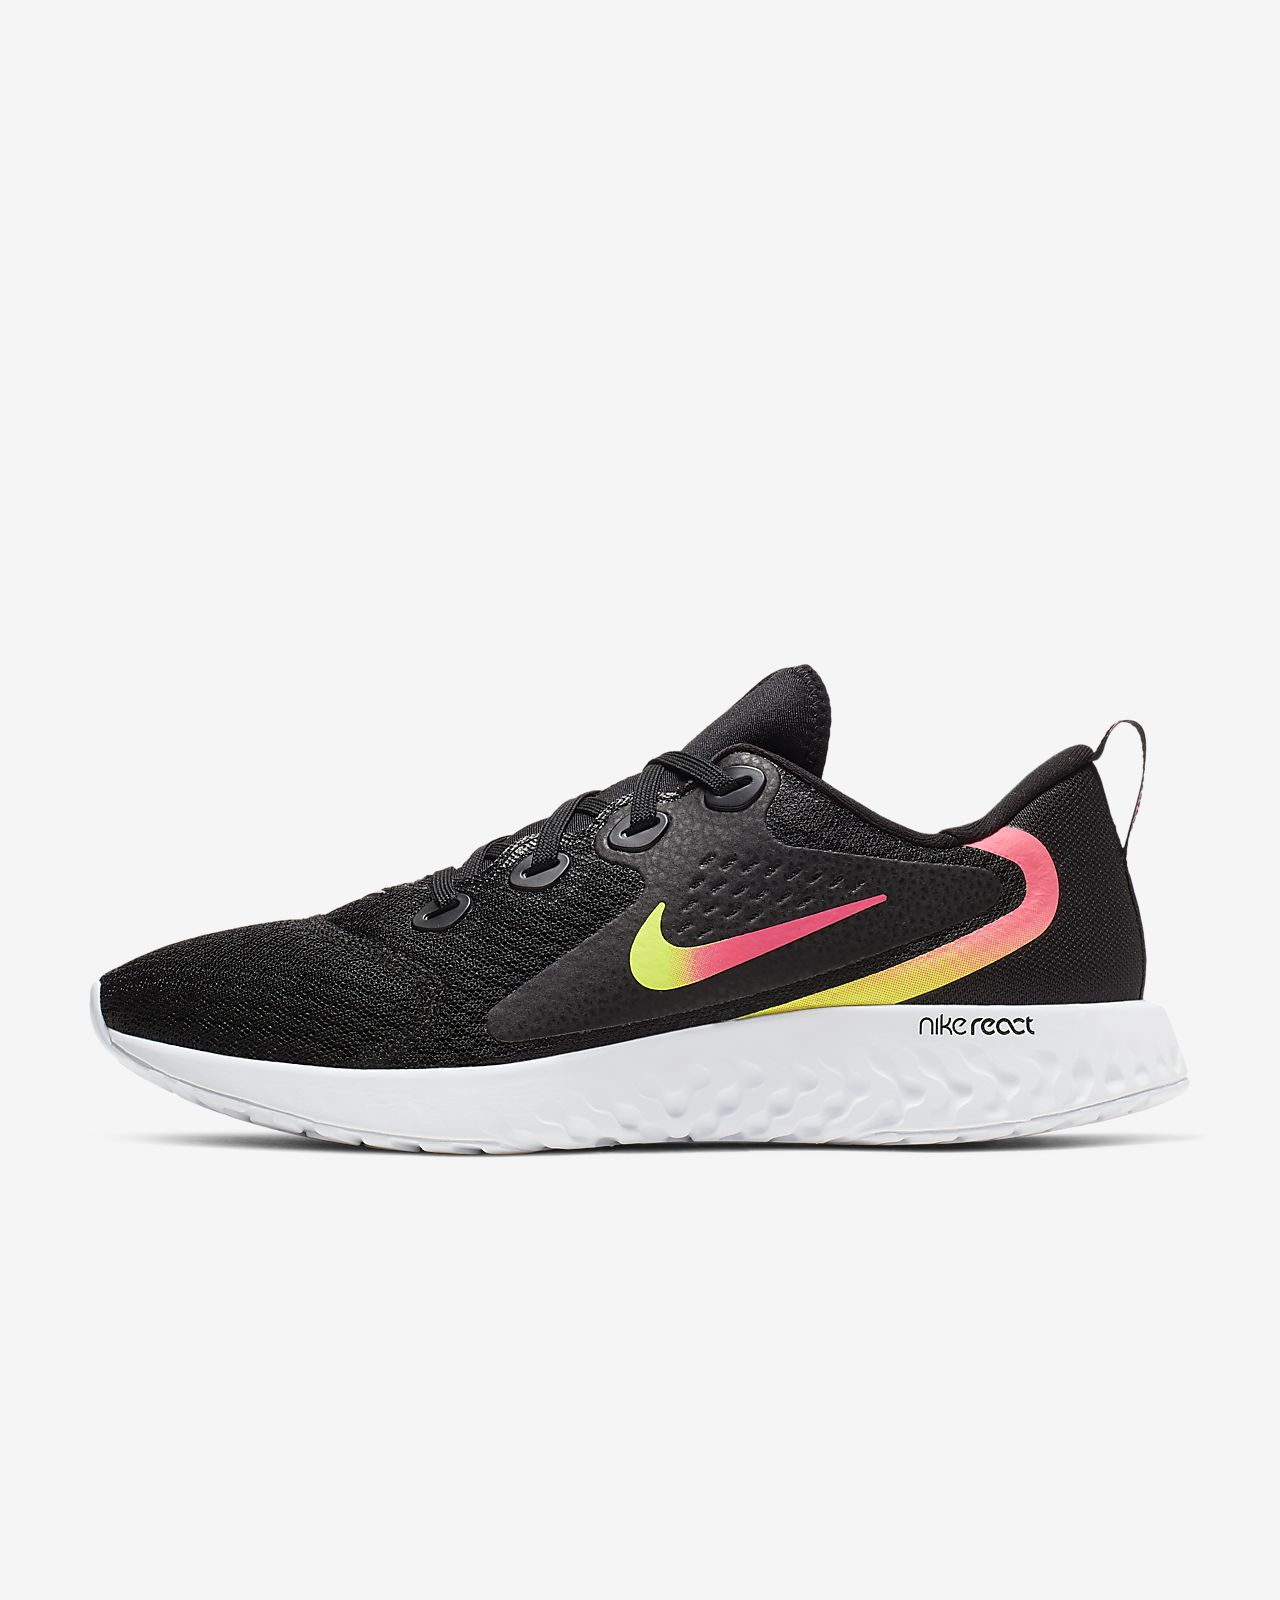 8c8307e5efa Nike Legend React Women s Running Shoe. Nike.com CA